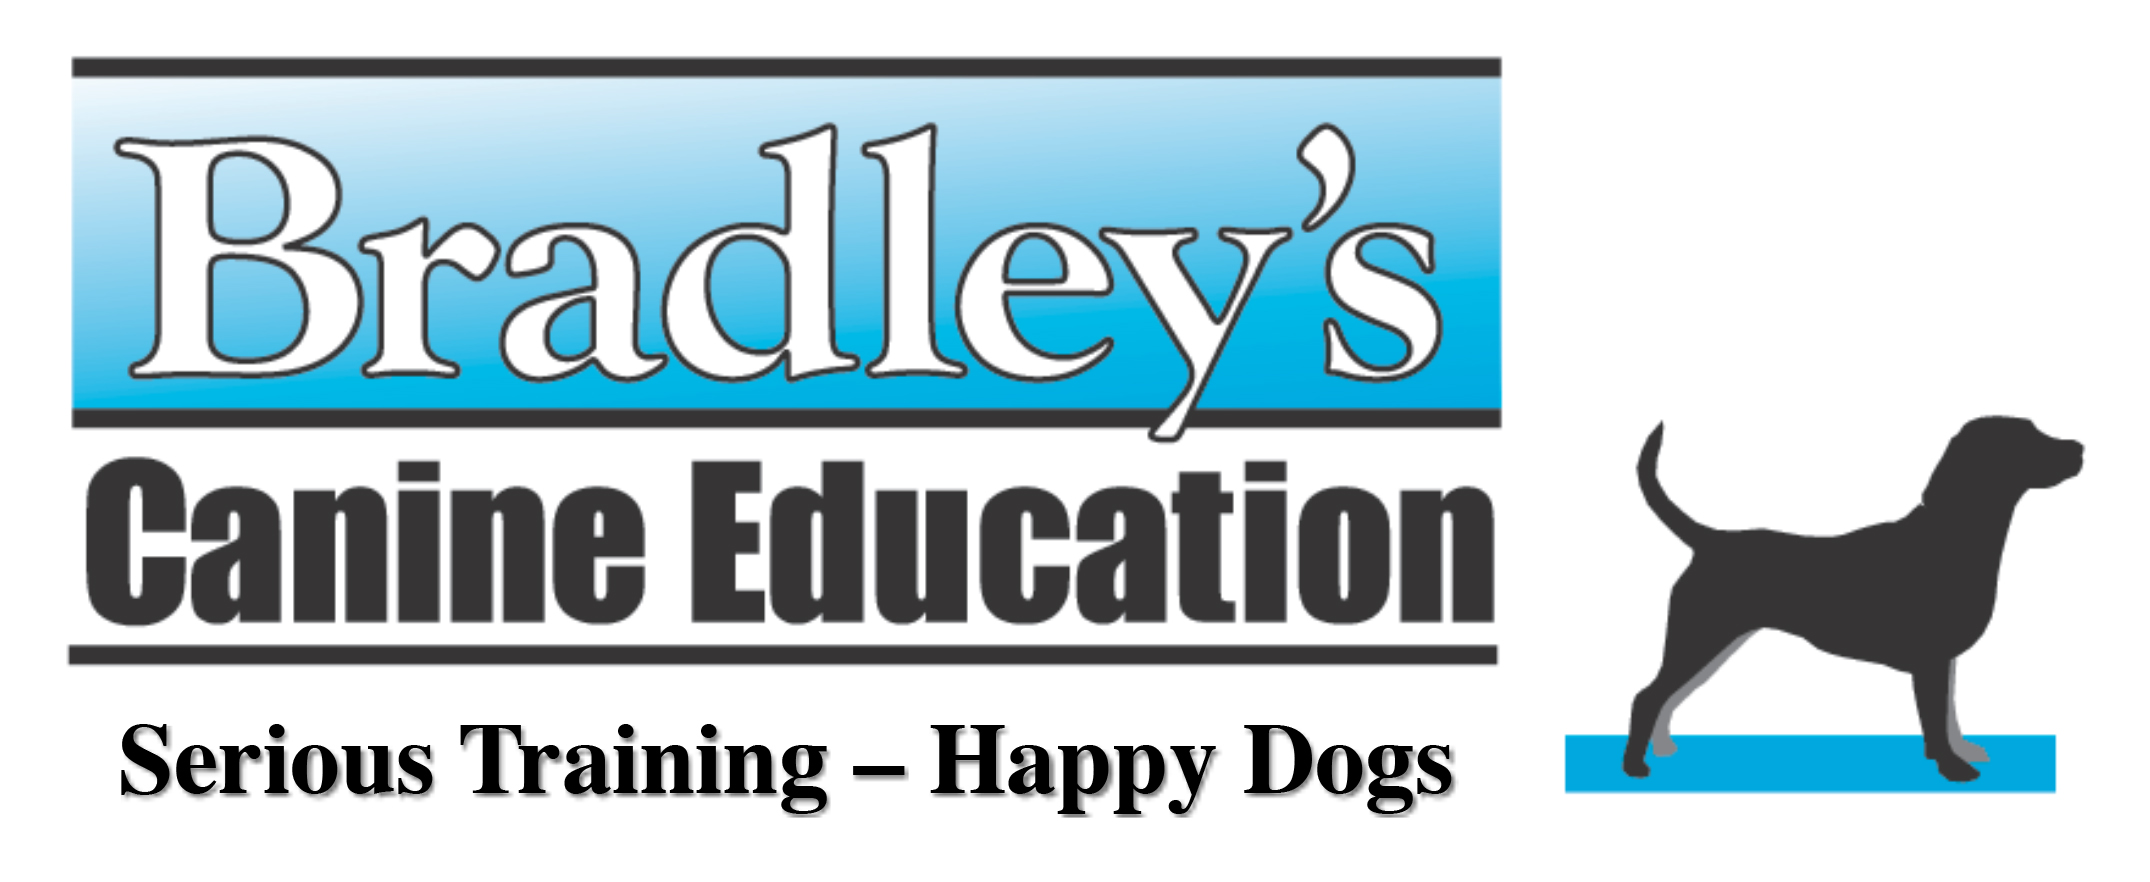 Bradley's Canine Education